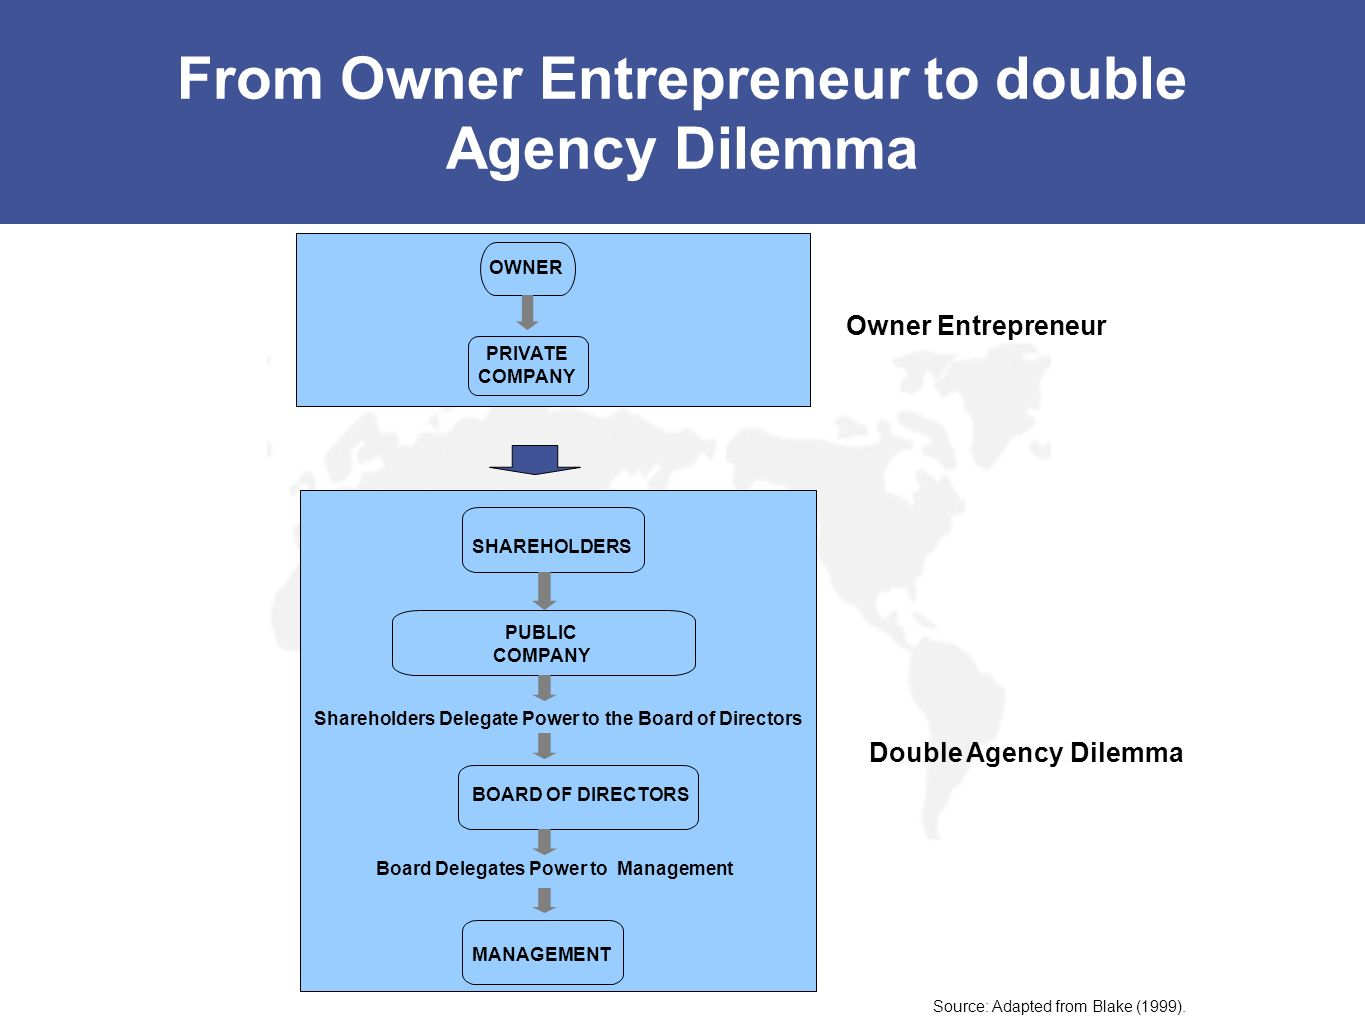 From Owner Entrepreneur to double Agency Dilemma